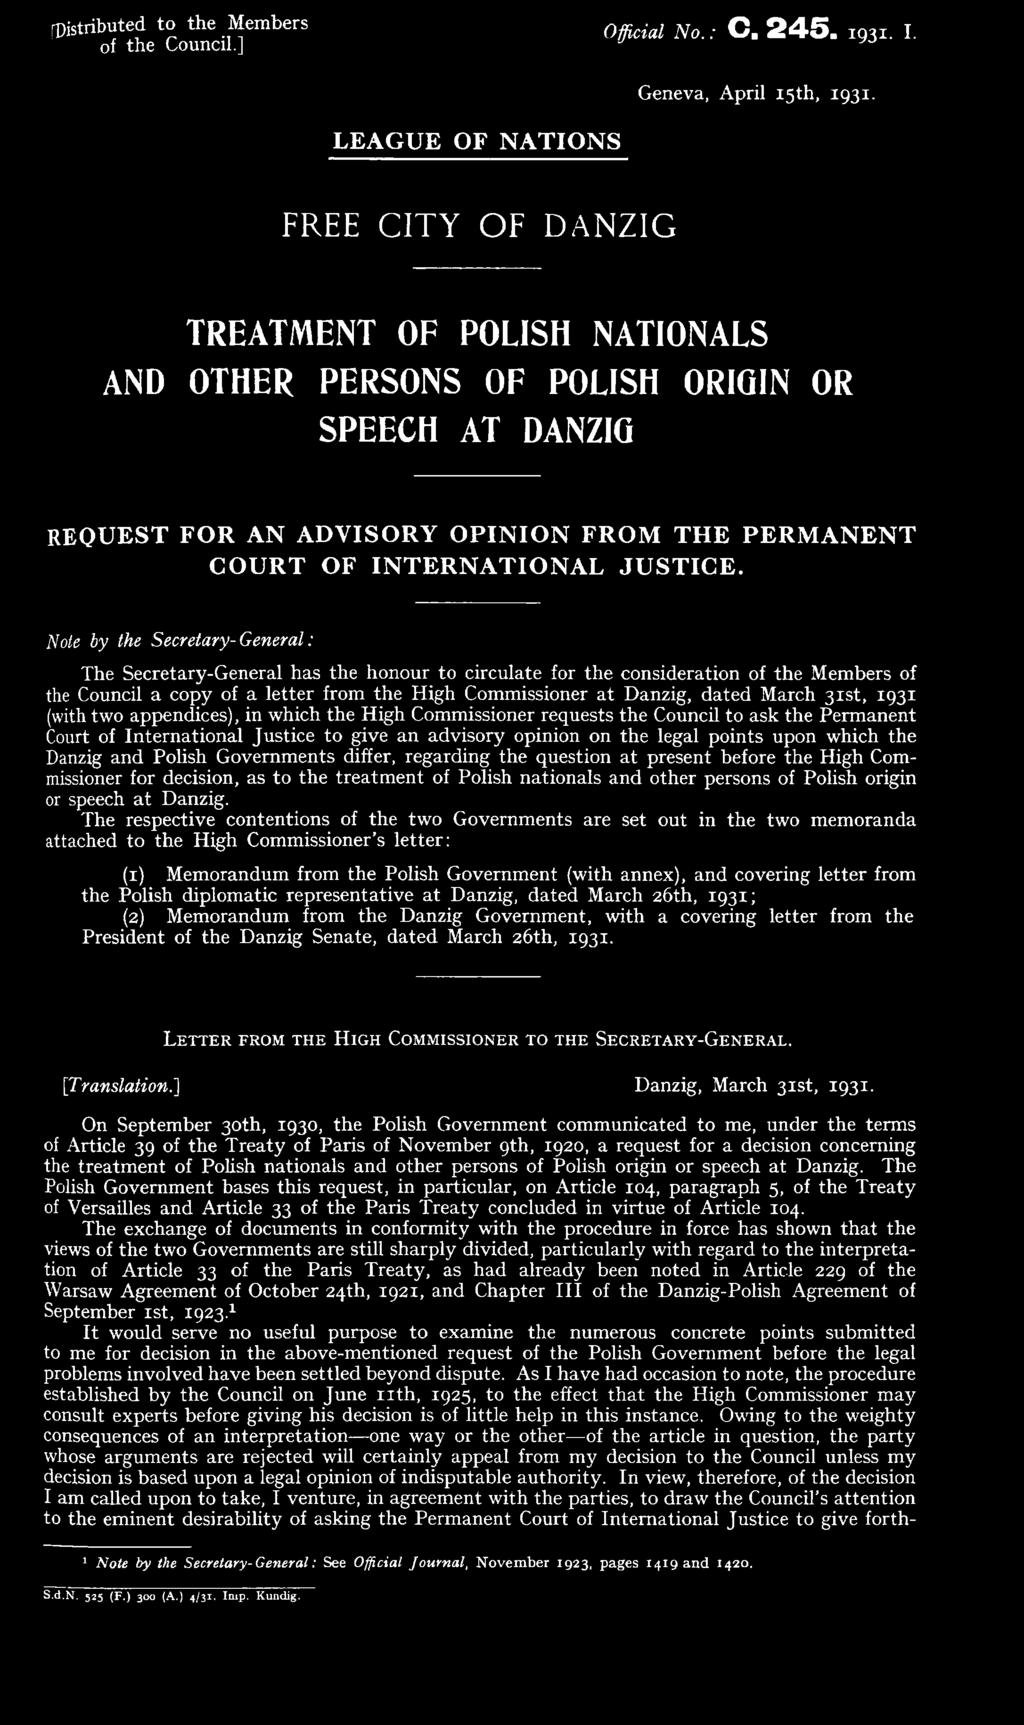 March 31st, 1931 (with two appendices), in which the High Commissioner requests the Council to ask the Perm anent Court of International Justice to give an advisory opinion on the legal points upon